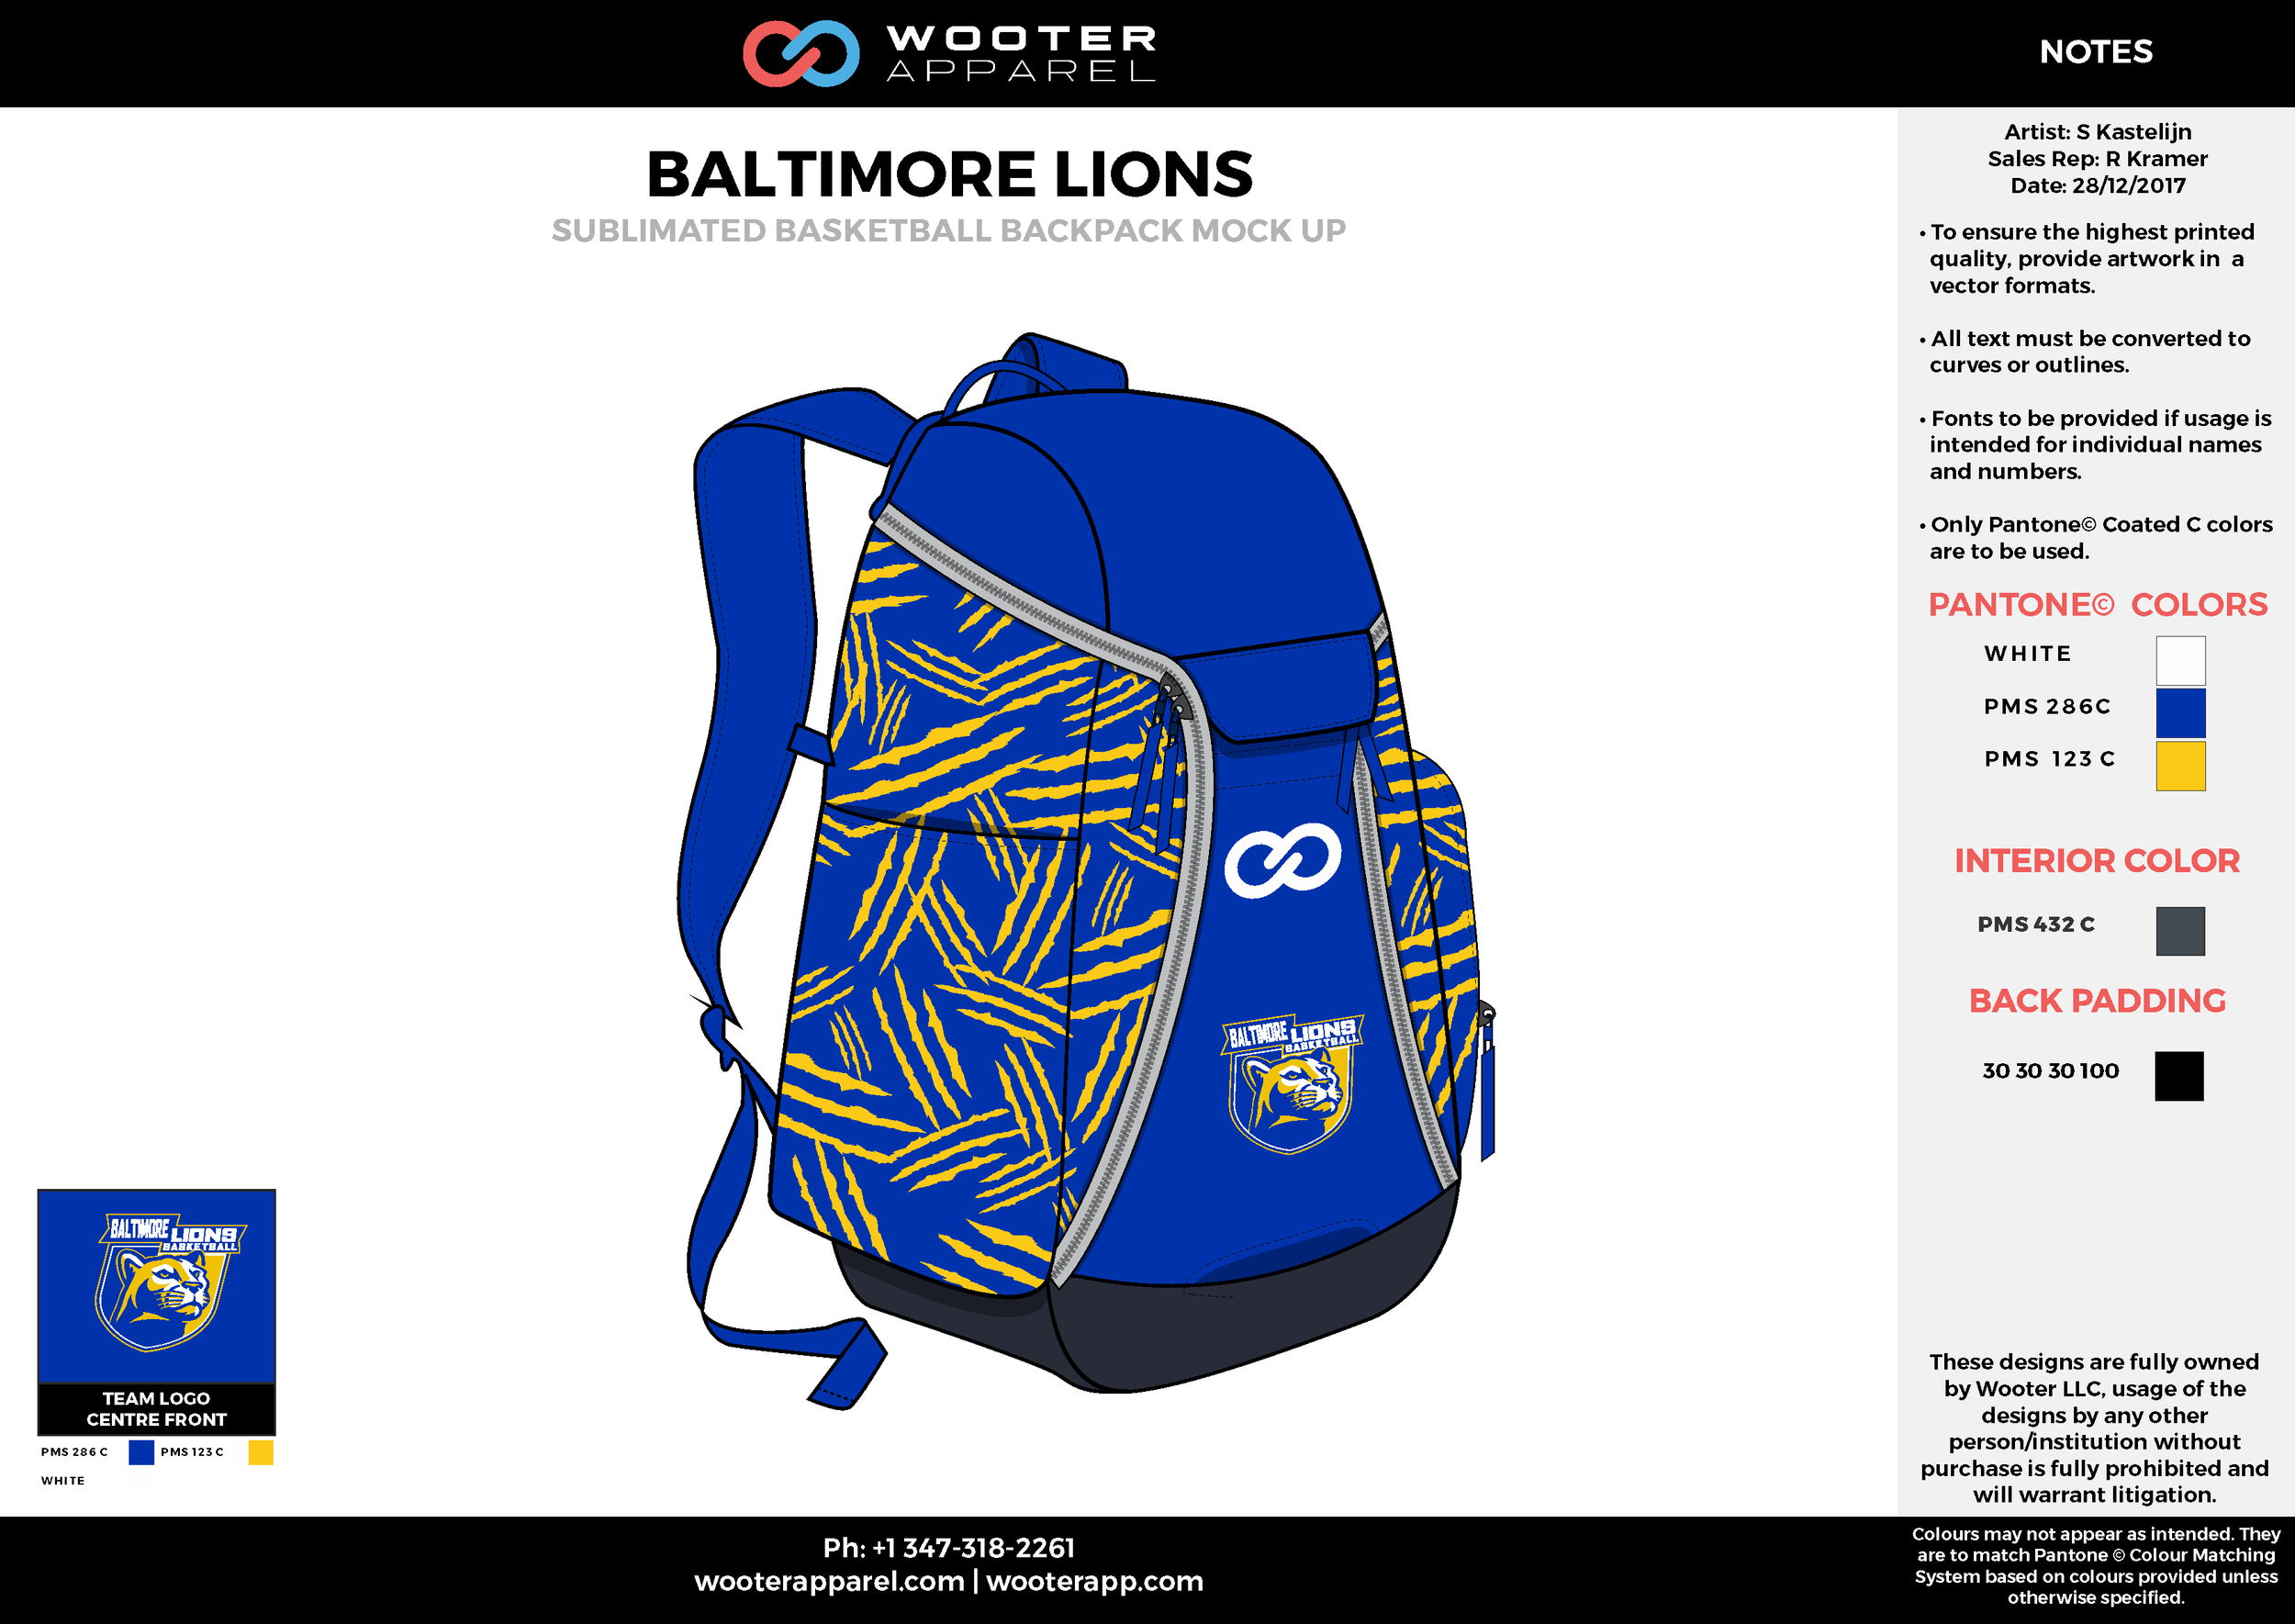 BALTIMORE LIONS Blue Yellow White Black Sublimated Basketball Backpack Mock Up